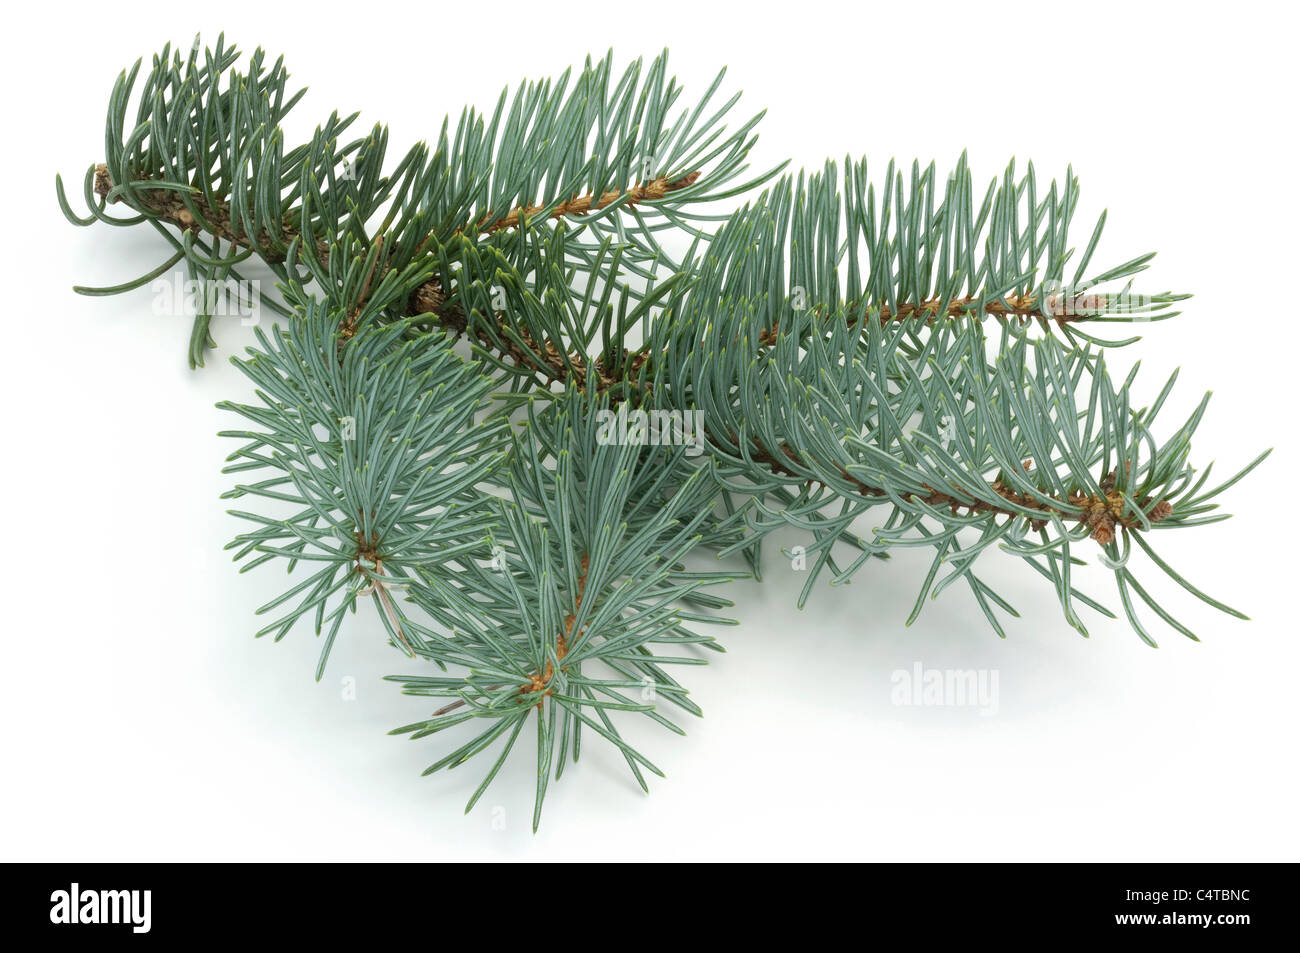 Blue Spruce (Picea pungens Glauca Globosa), twig. Studio picture against a white background. - Stock Image